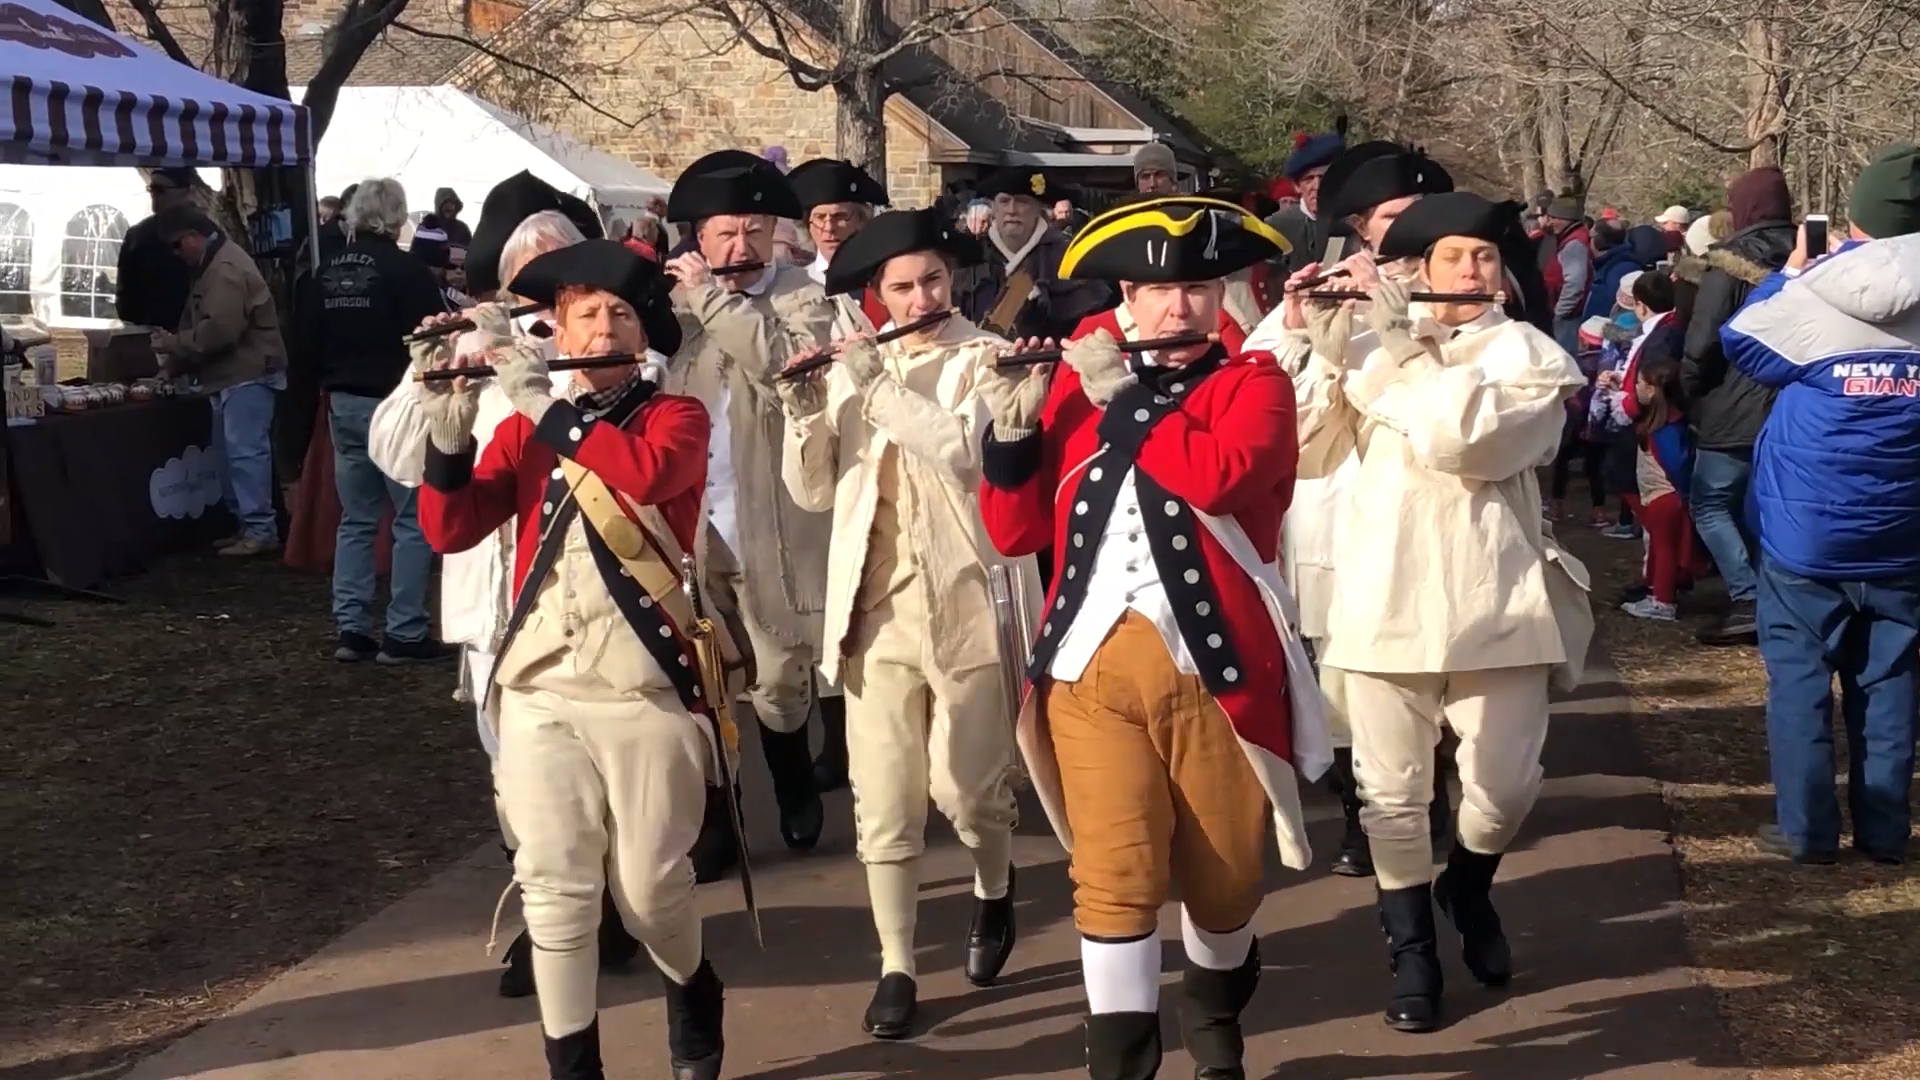 Washington Crossing Celebrates Annual River Crossing Reenactment